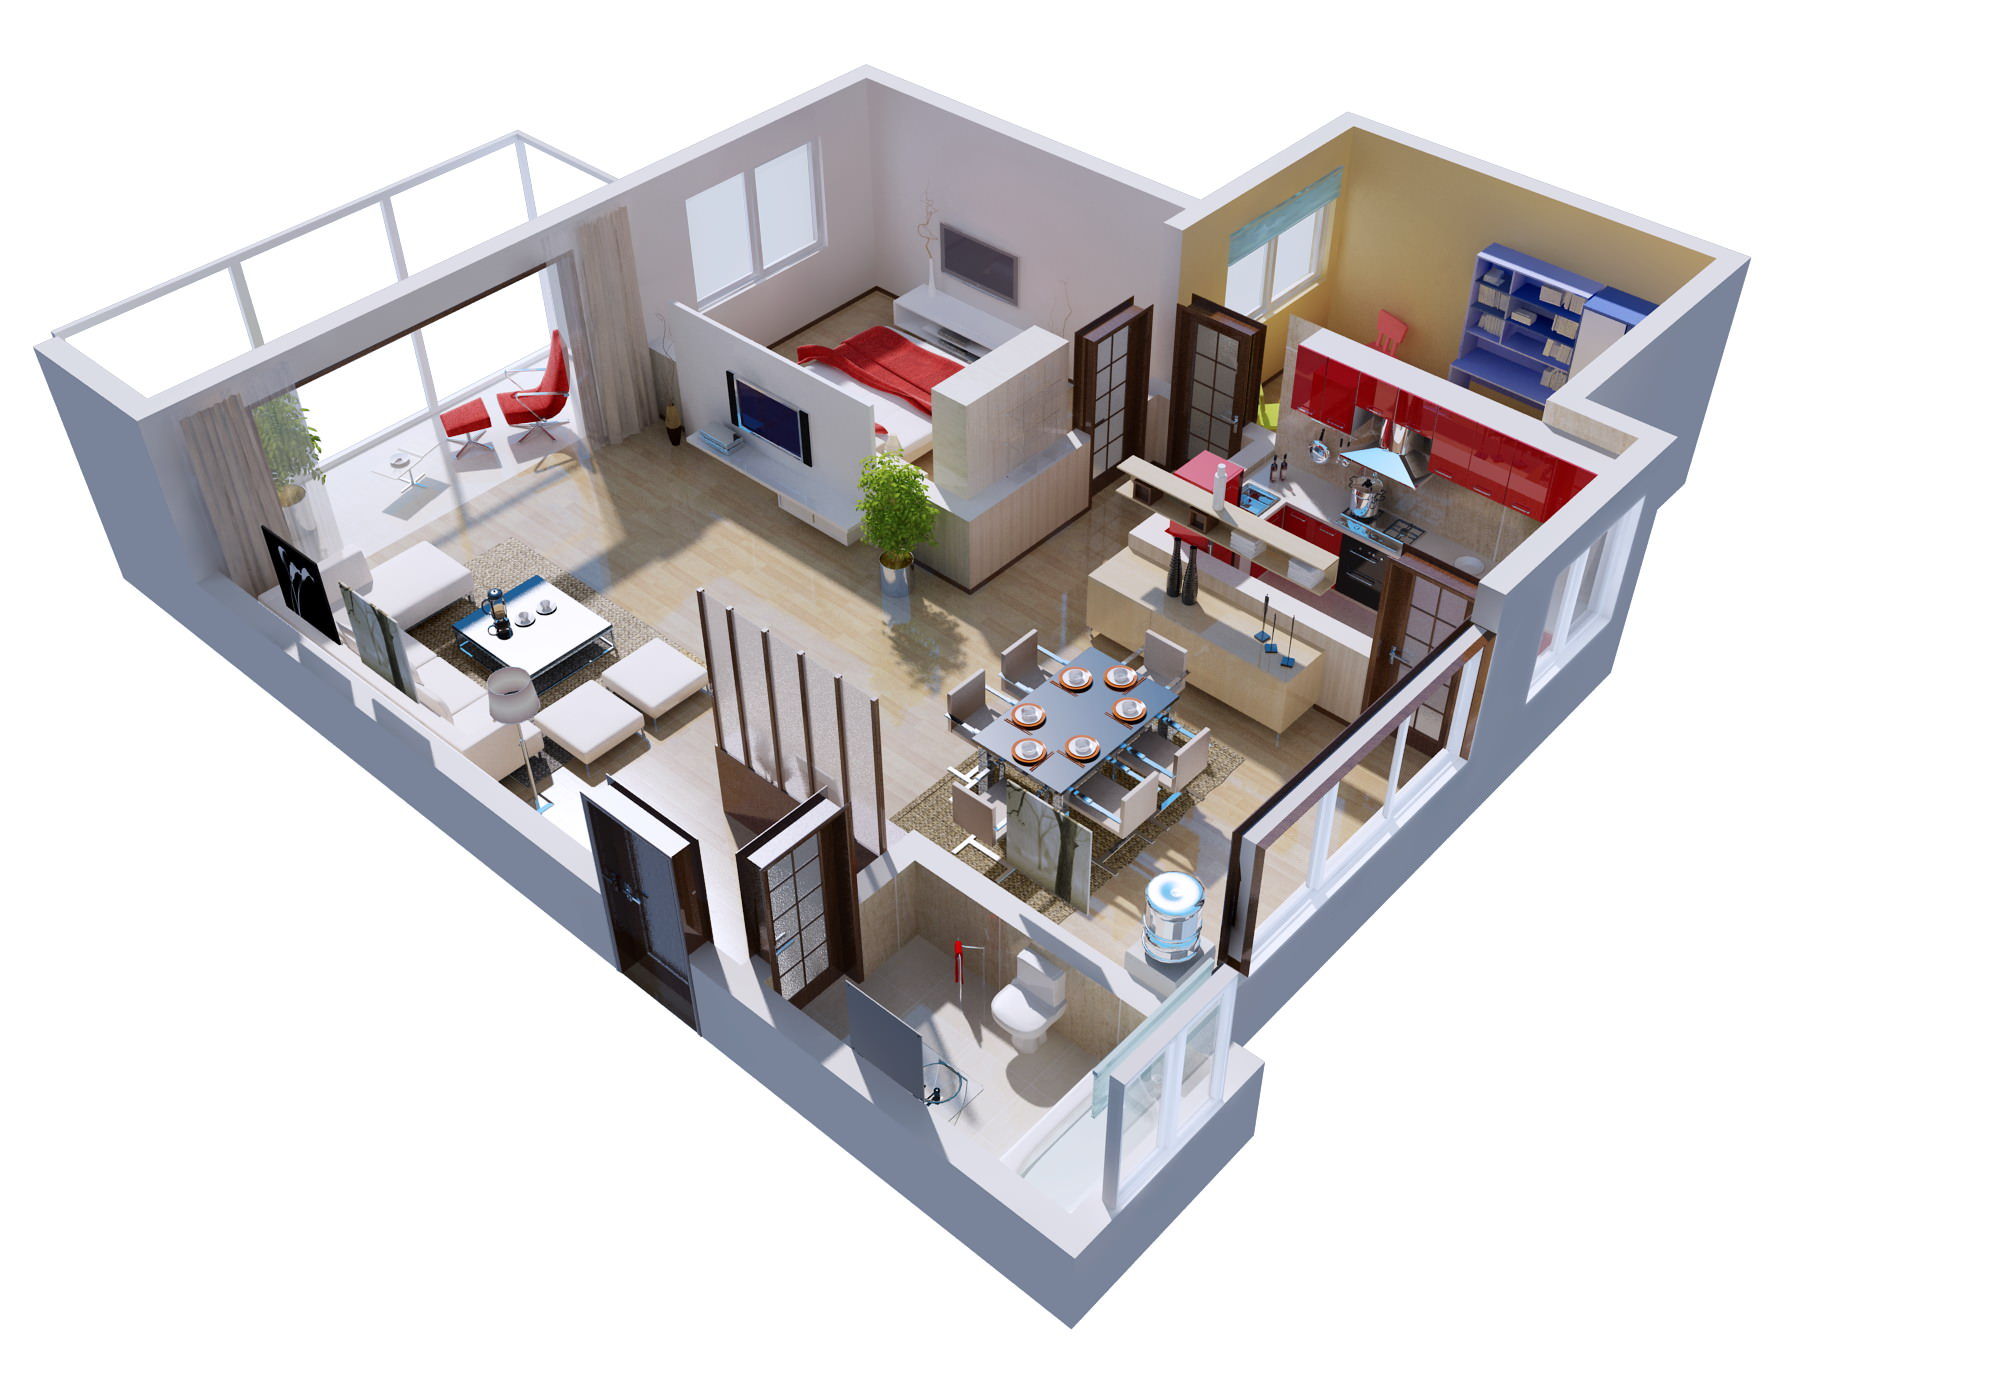 posh house interior 3d model max fbx 1 ...